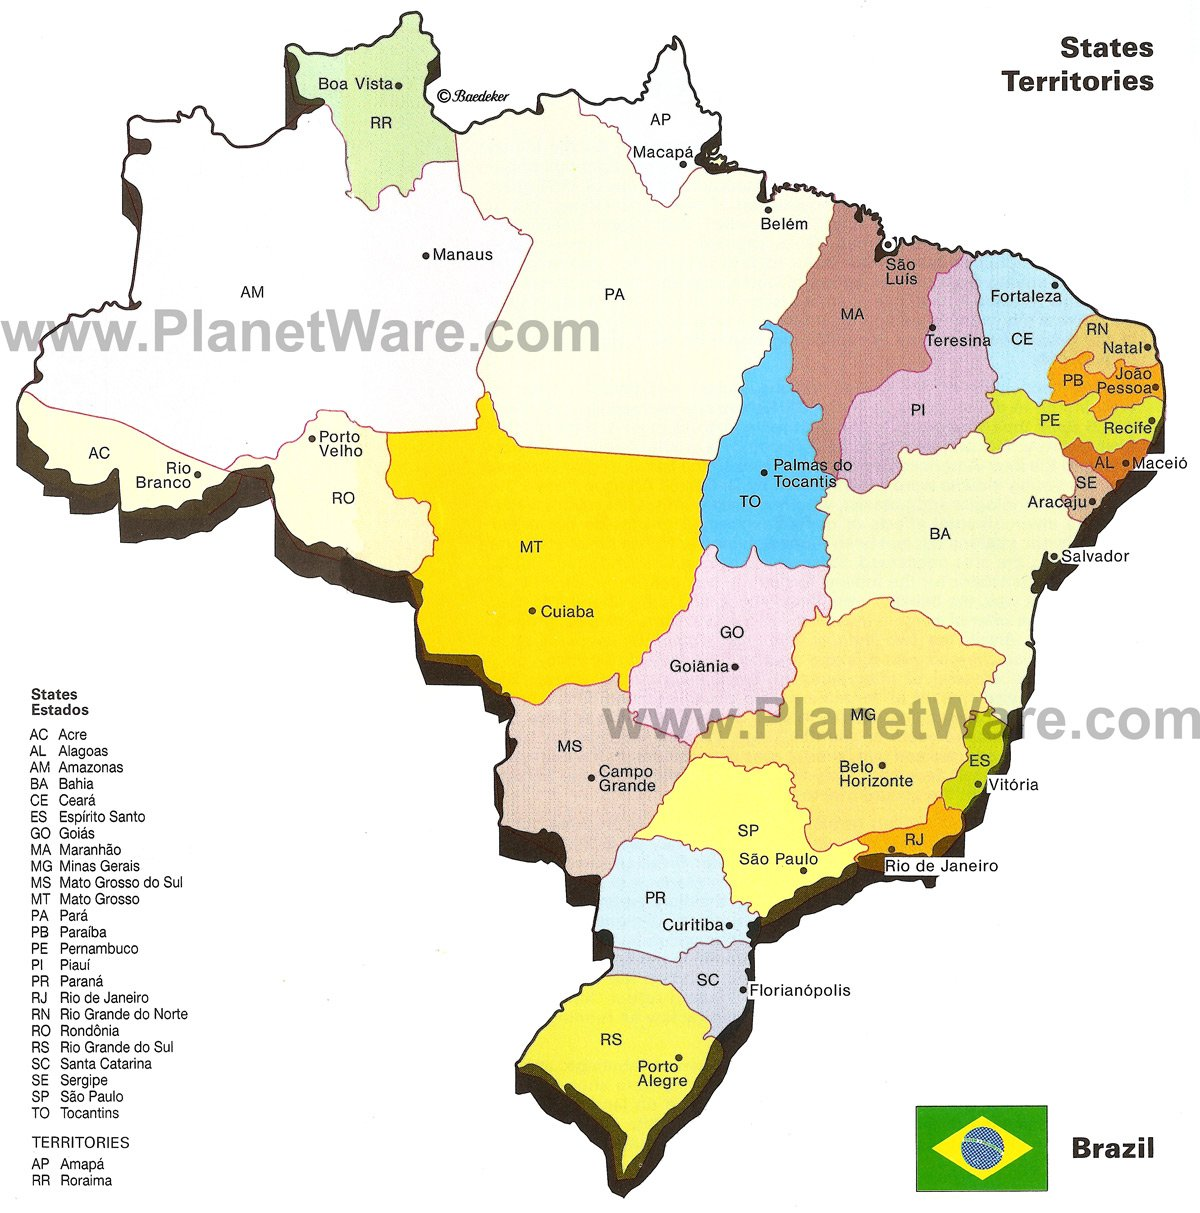 Map Of Brazil States Major Citites PlanetWare - Brazil states map